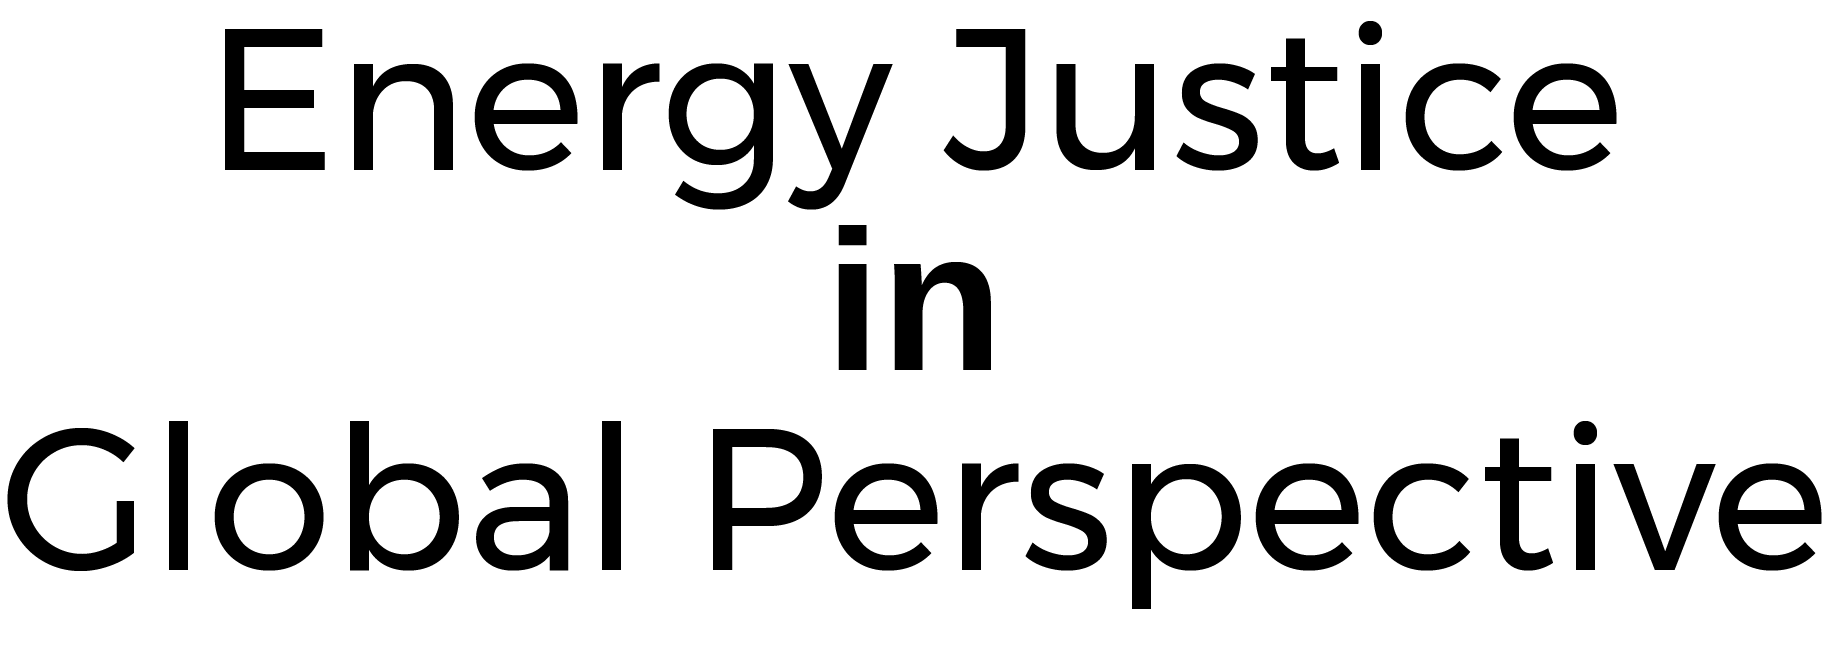 Energy Justice in Global Perspective - UC Santa Barbara